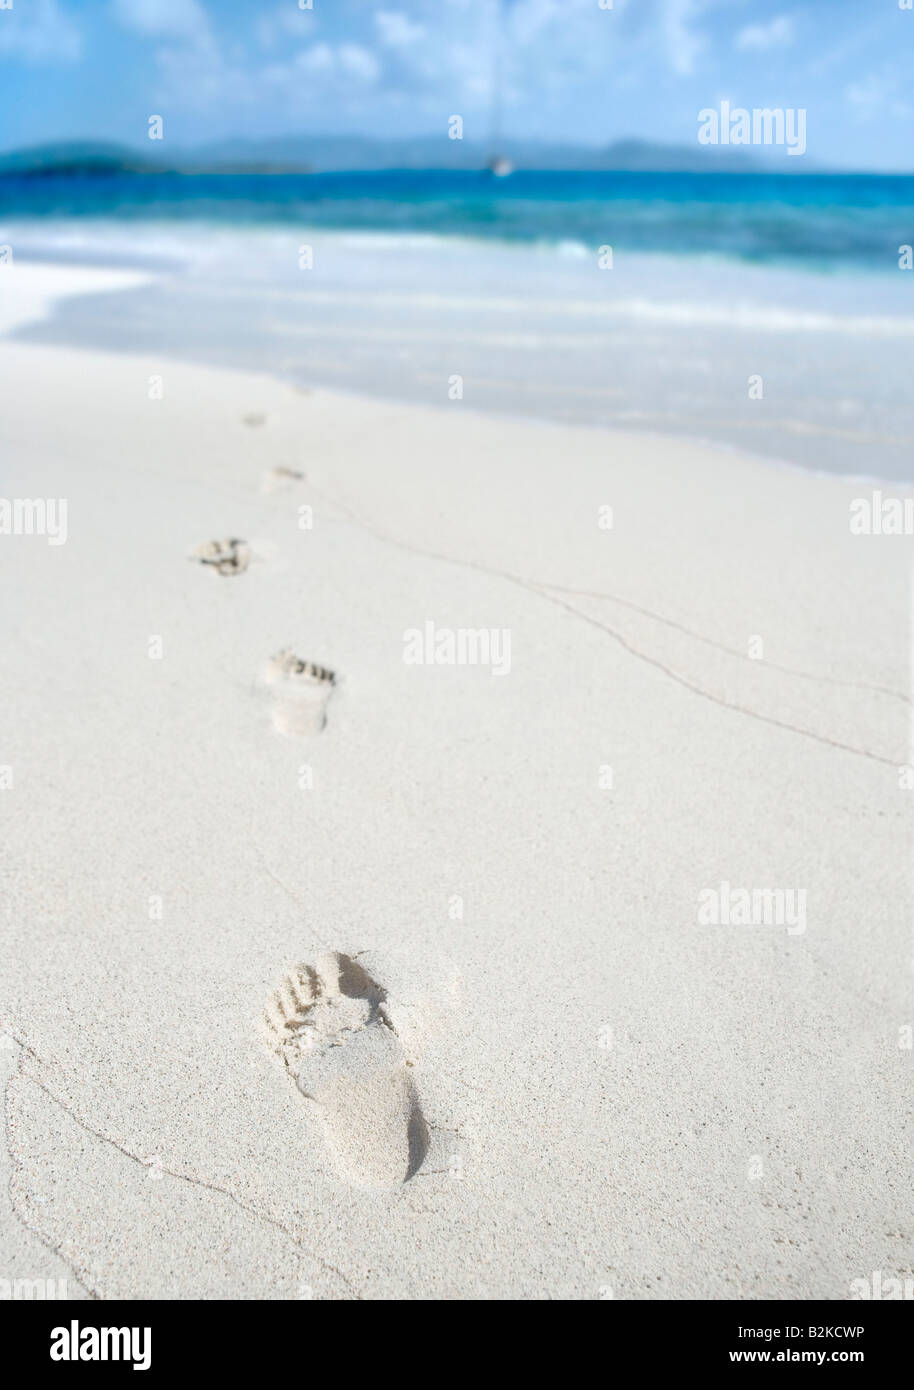 Footprints on a sunny tropical beach in the Caribbean - Stock Image